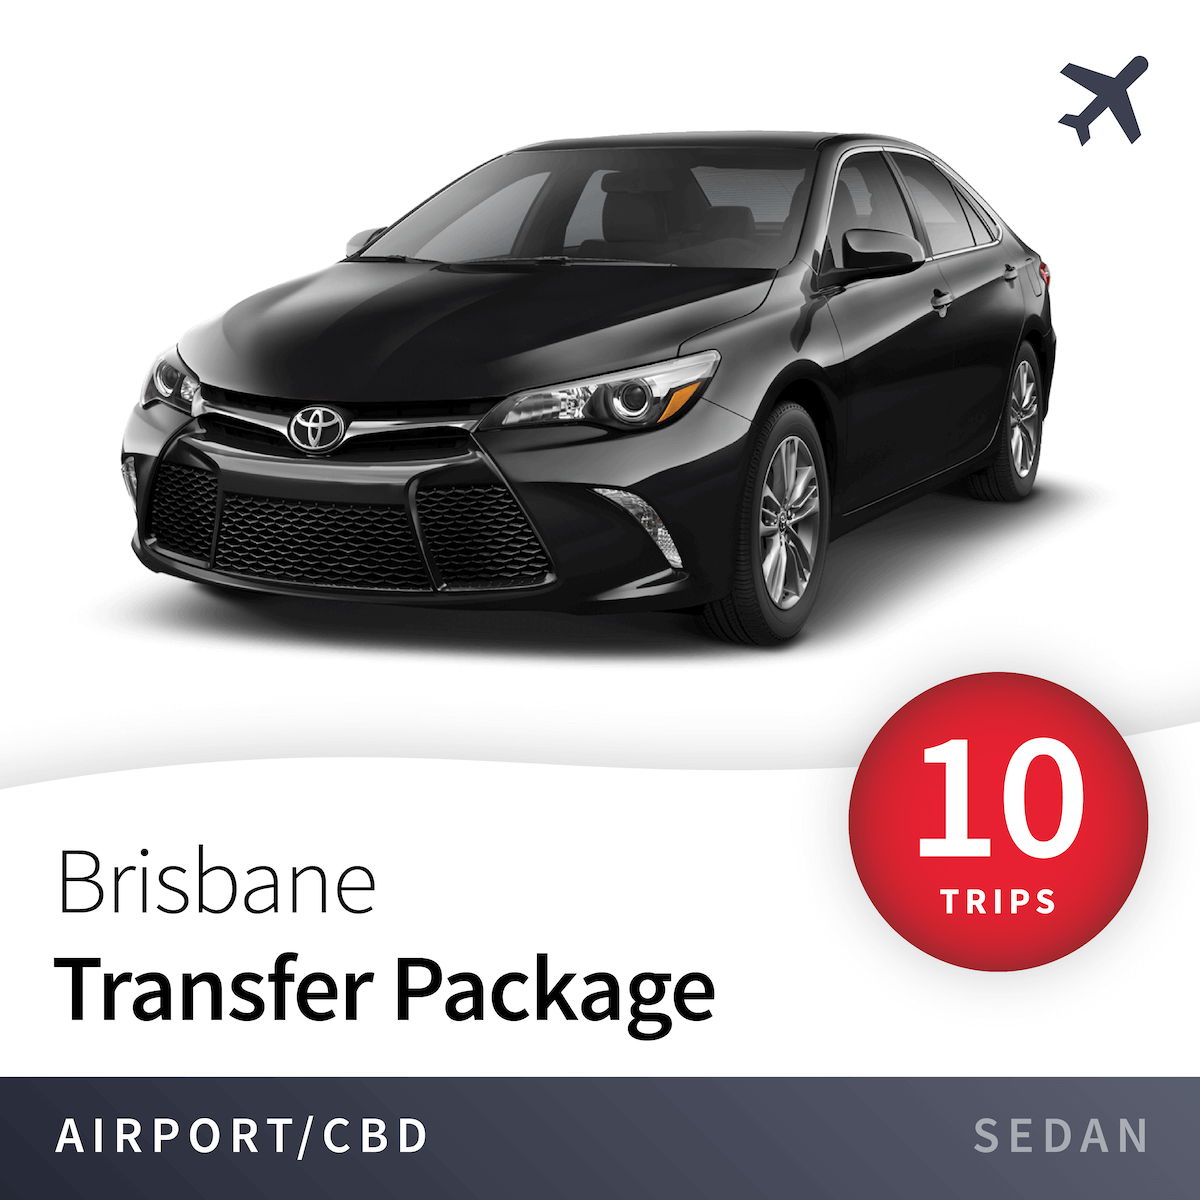 Brisbane Airport Transfer Package - Sedan (10 Trips) 11